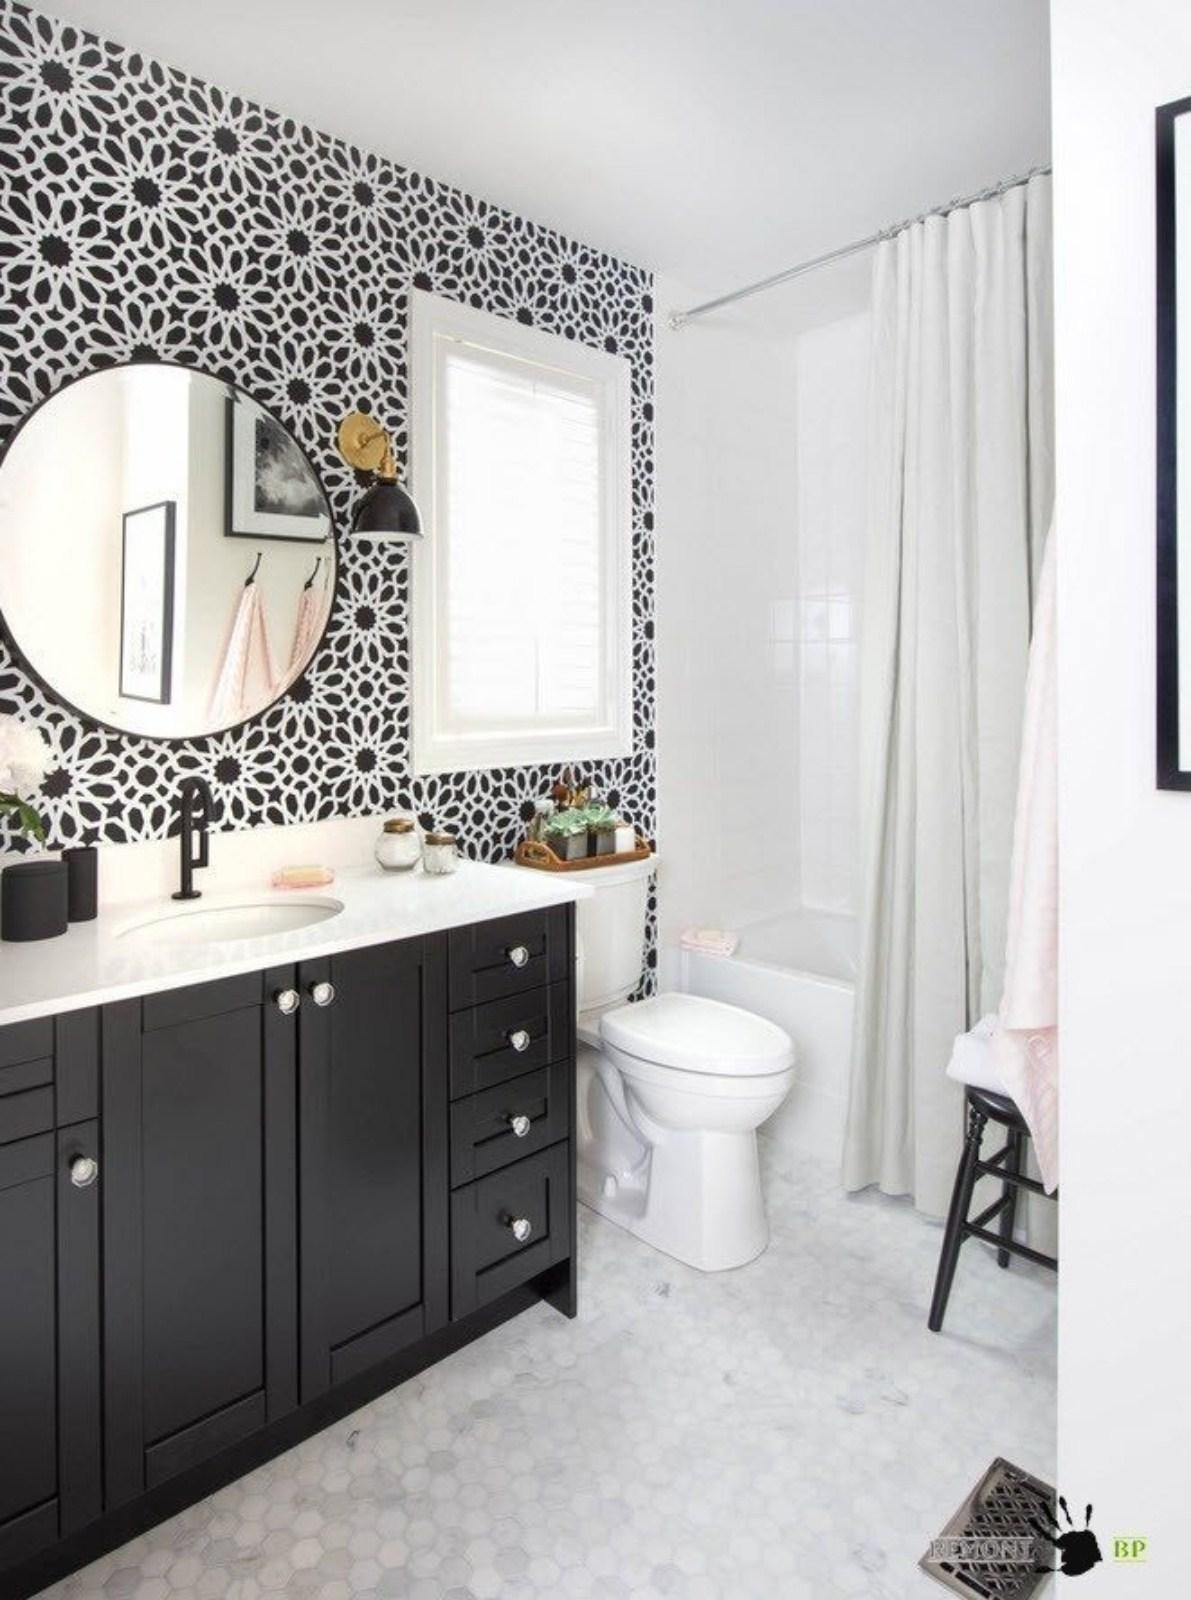 Bathroom Cabinets : Modern Round Bathroom Mirror With Black Throughout Round Mirrors For Bathroom (View 12 of 20)